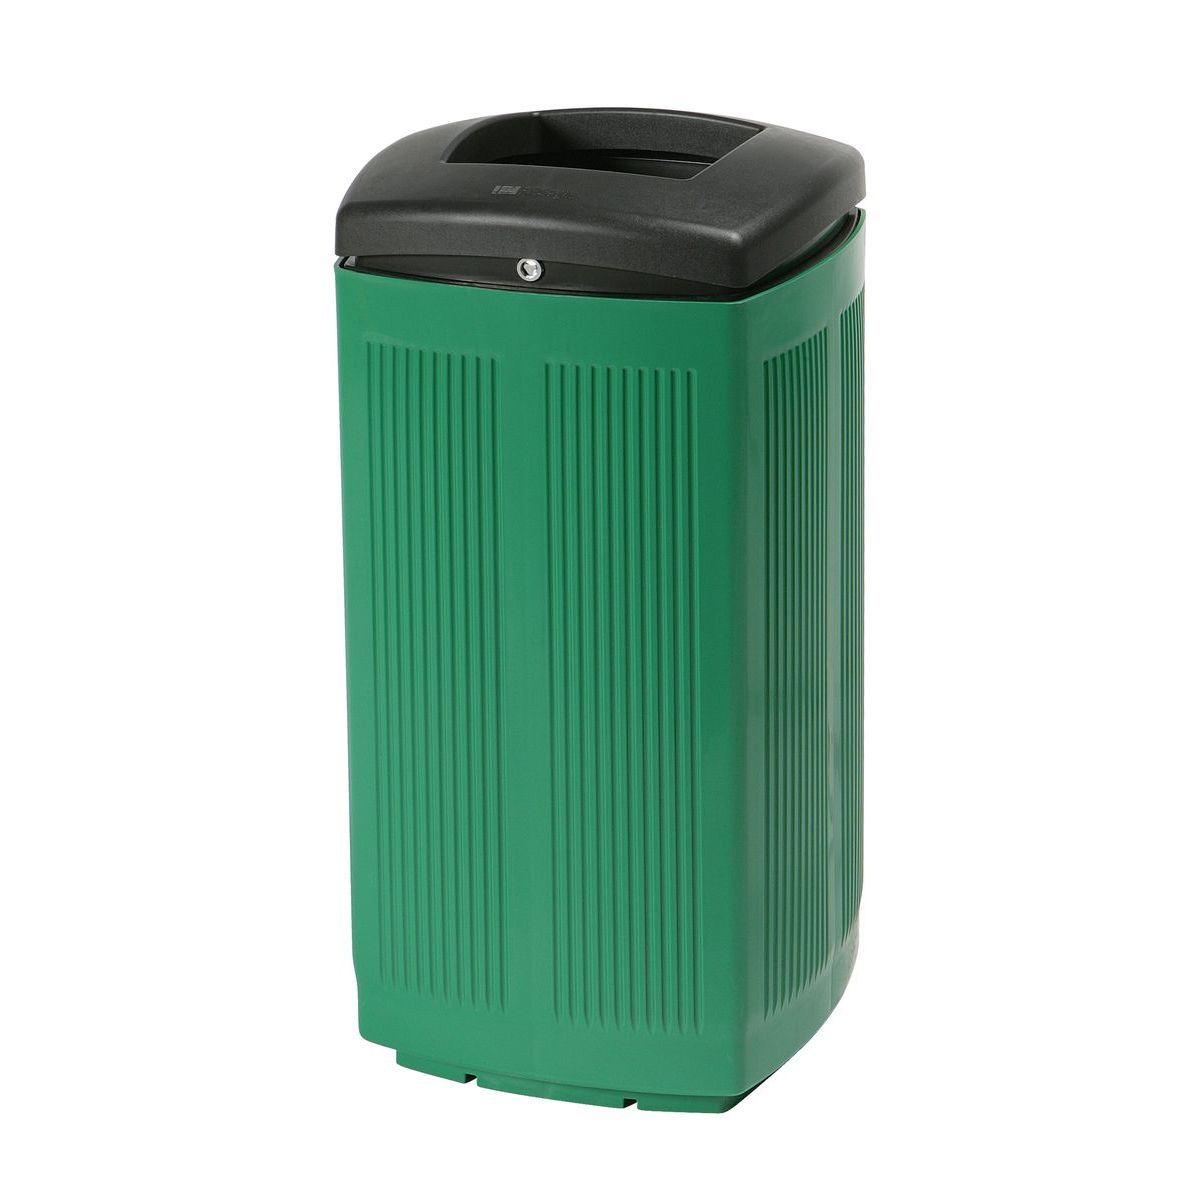 Toscana Polypropylene Green Bin for street P-200-VER